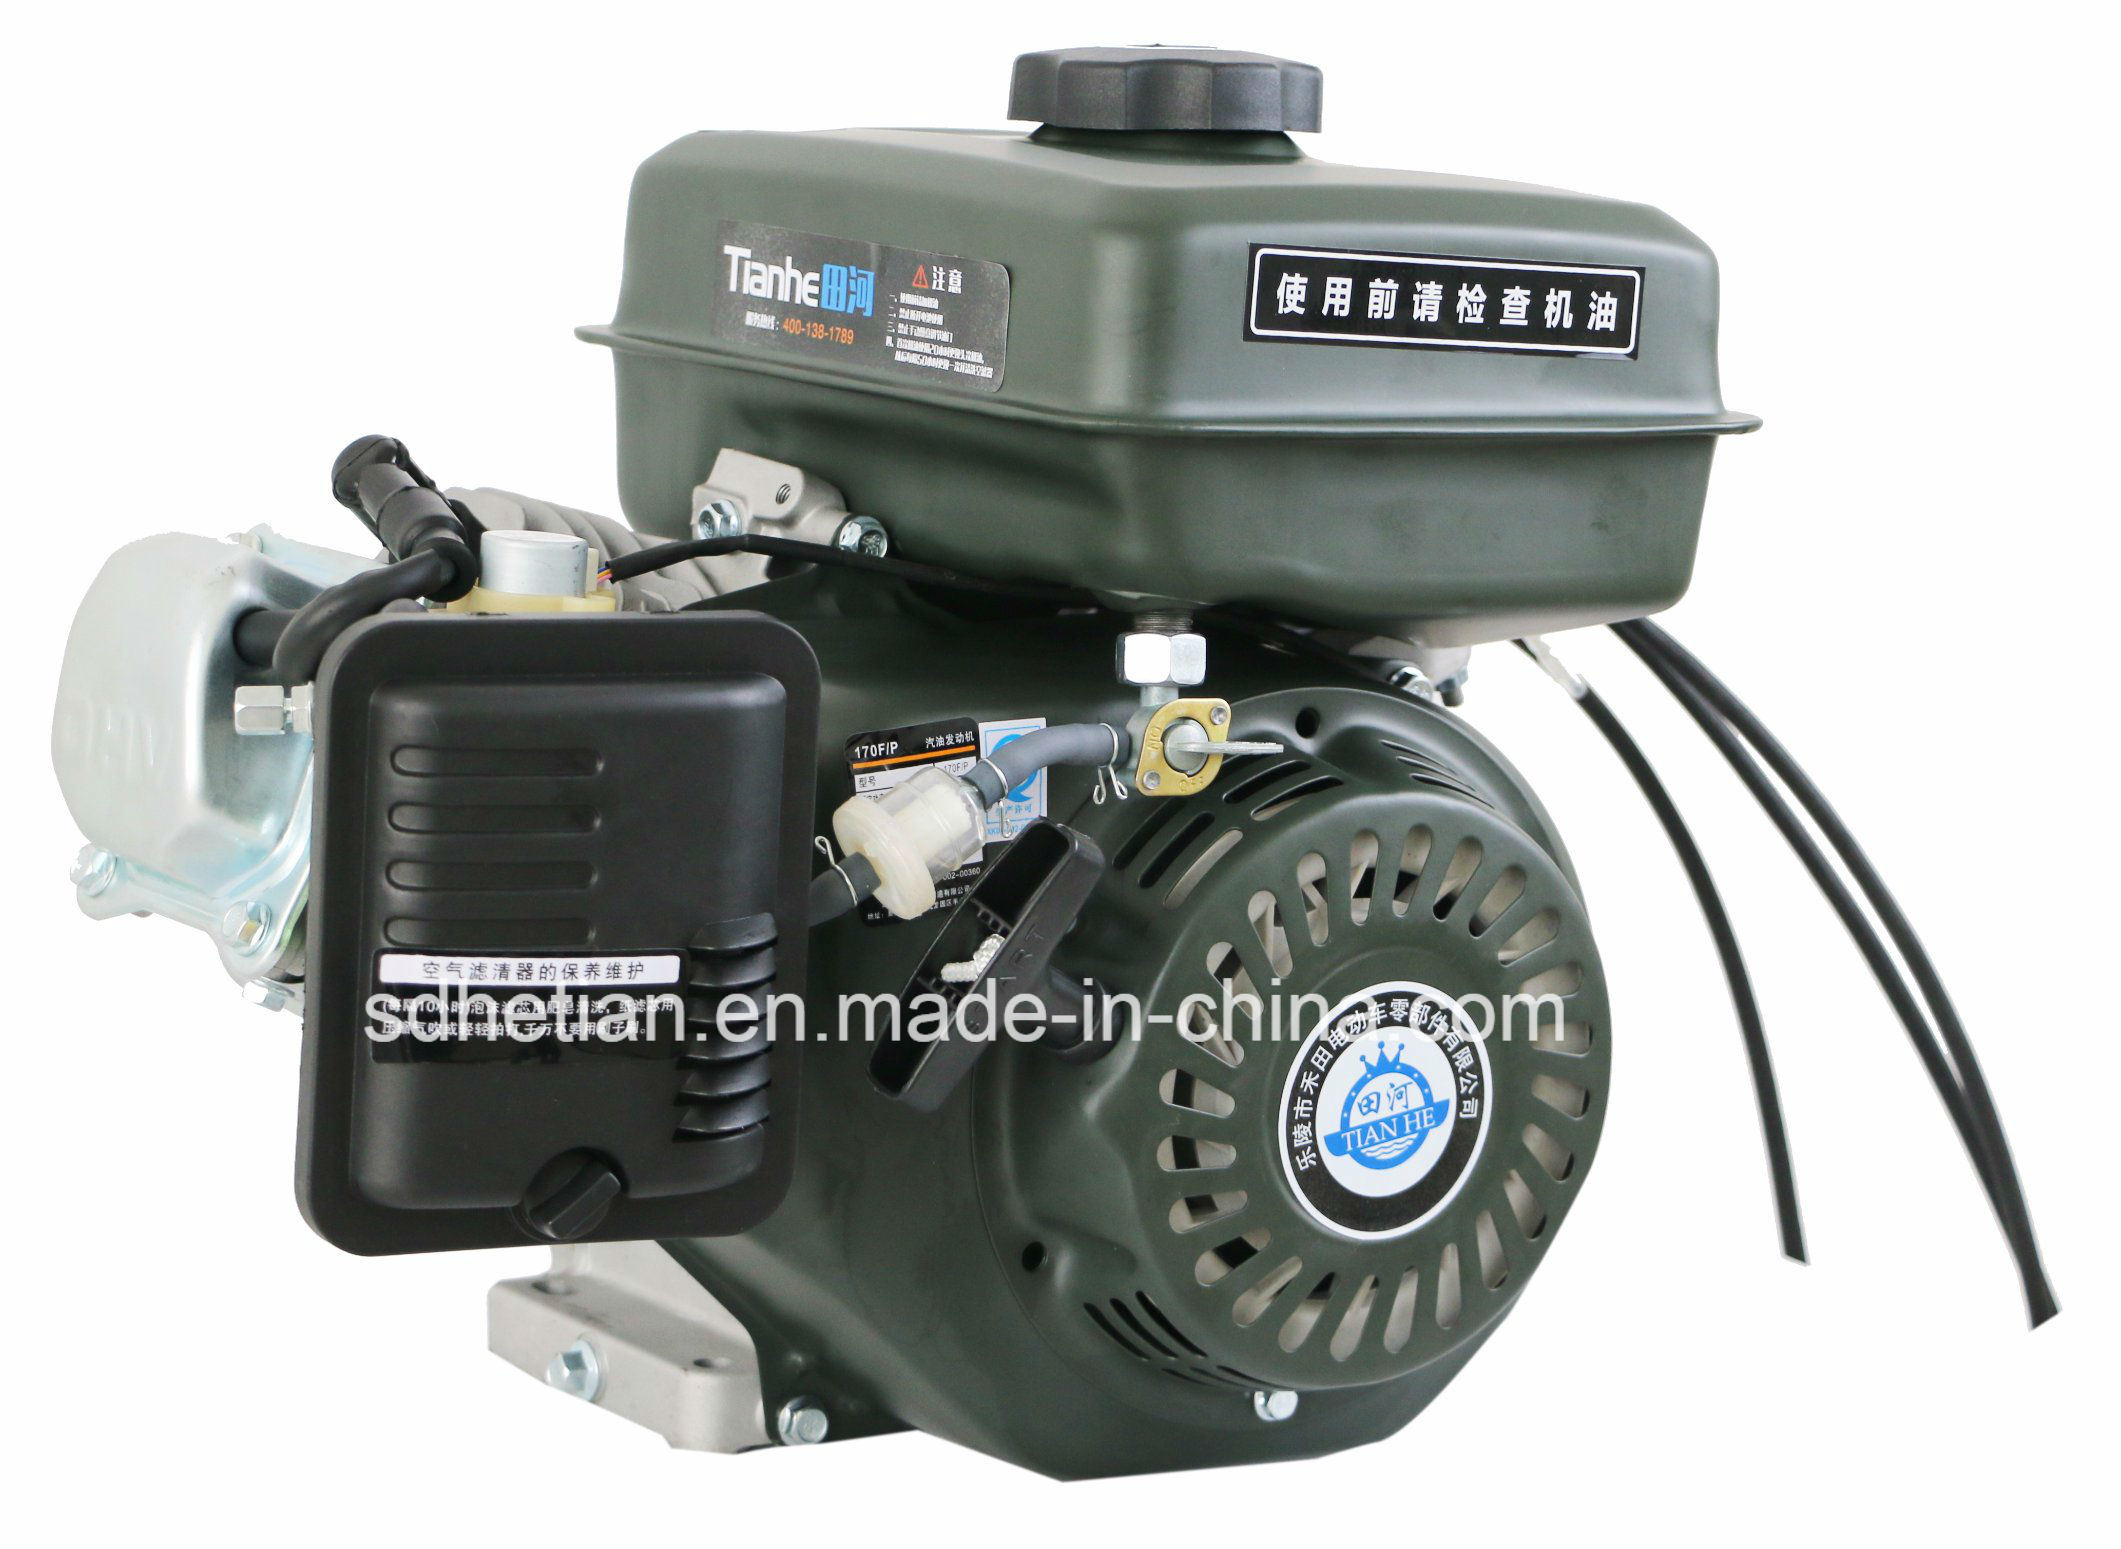 China 3500w Strong Electric Car Range Extender Vehicle Gasoline Generator